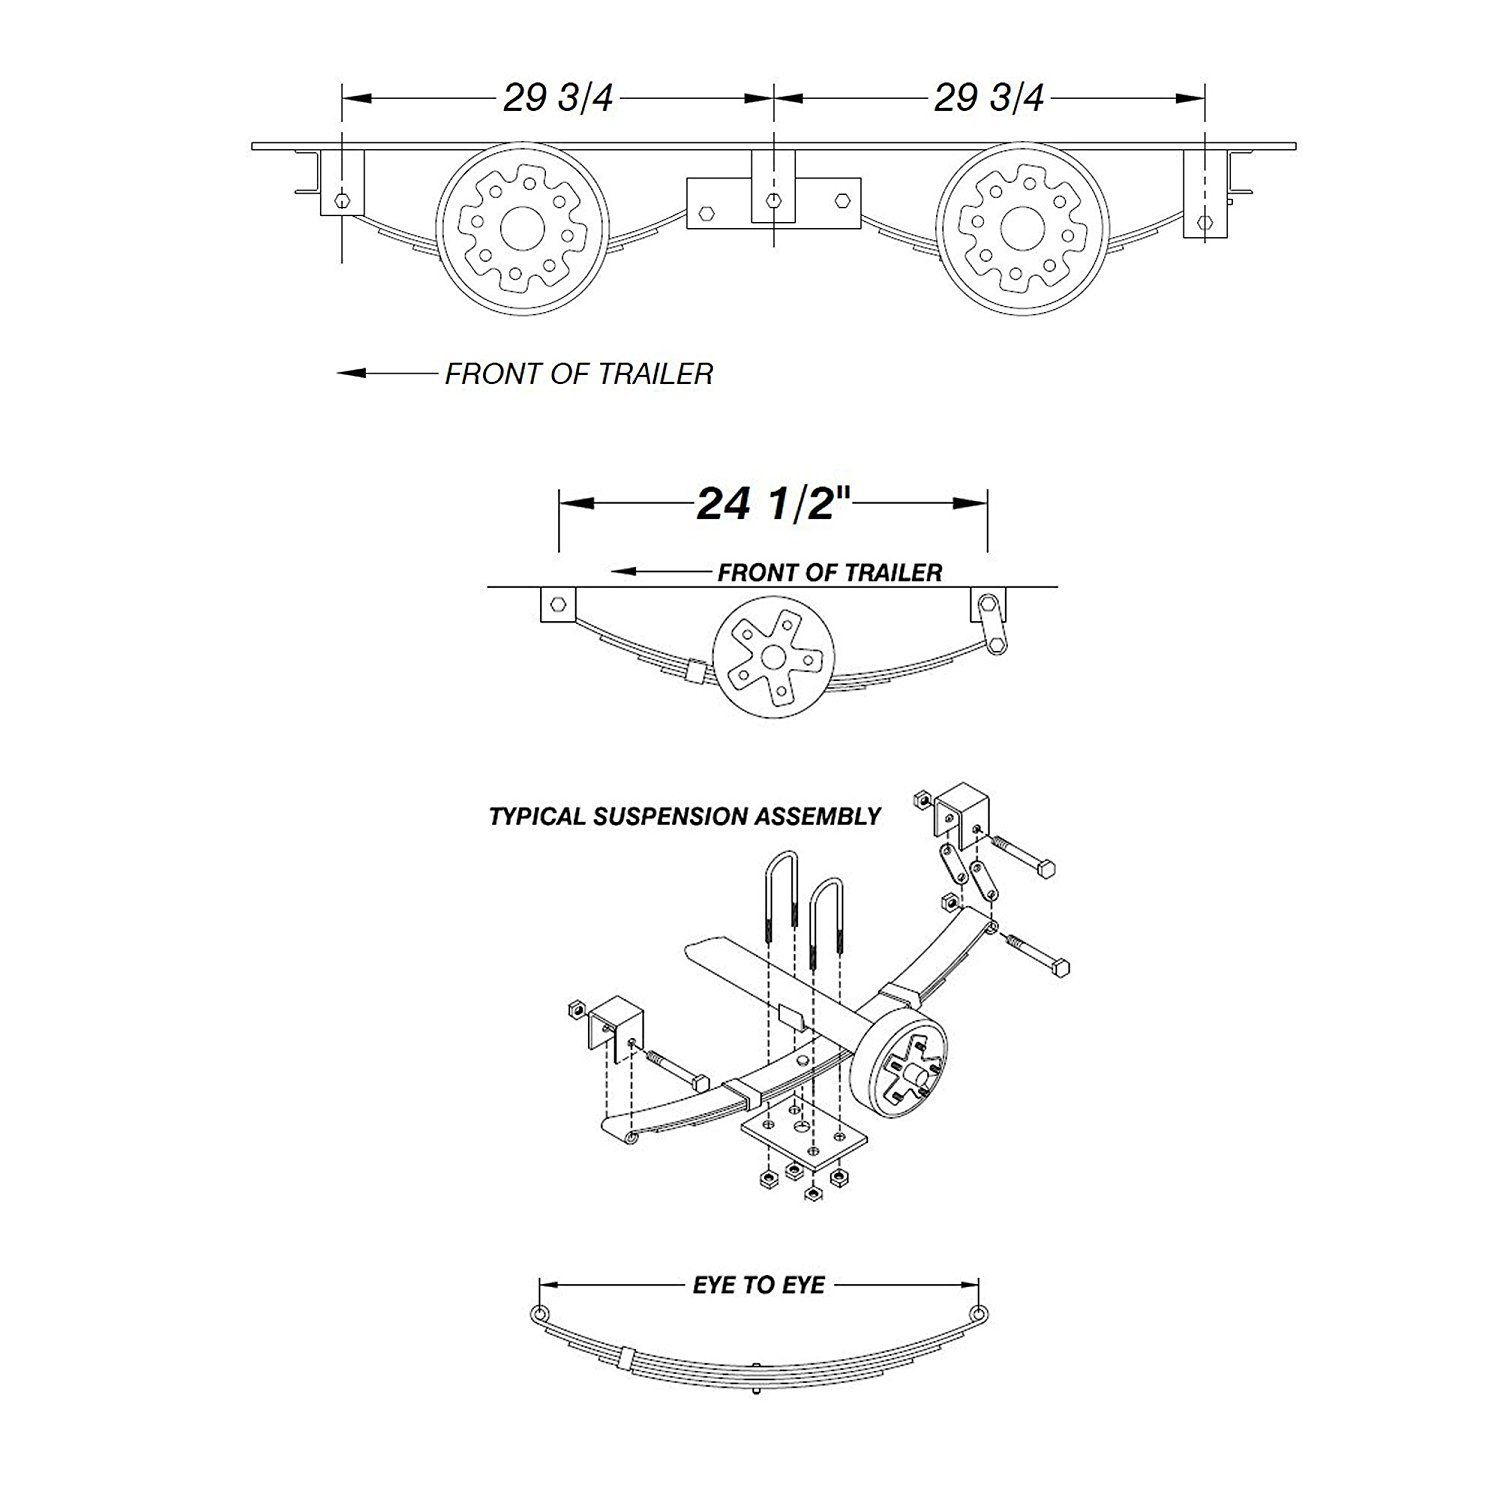 Electric Brakes On Axle Electric Trailer Ke Wiring Diagram Get Free